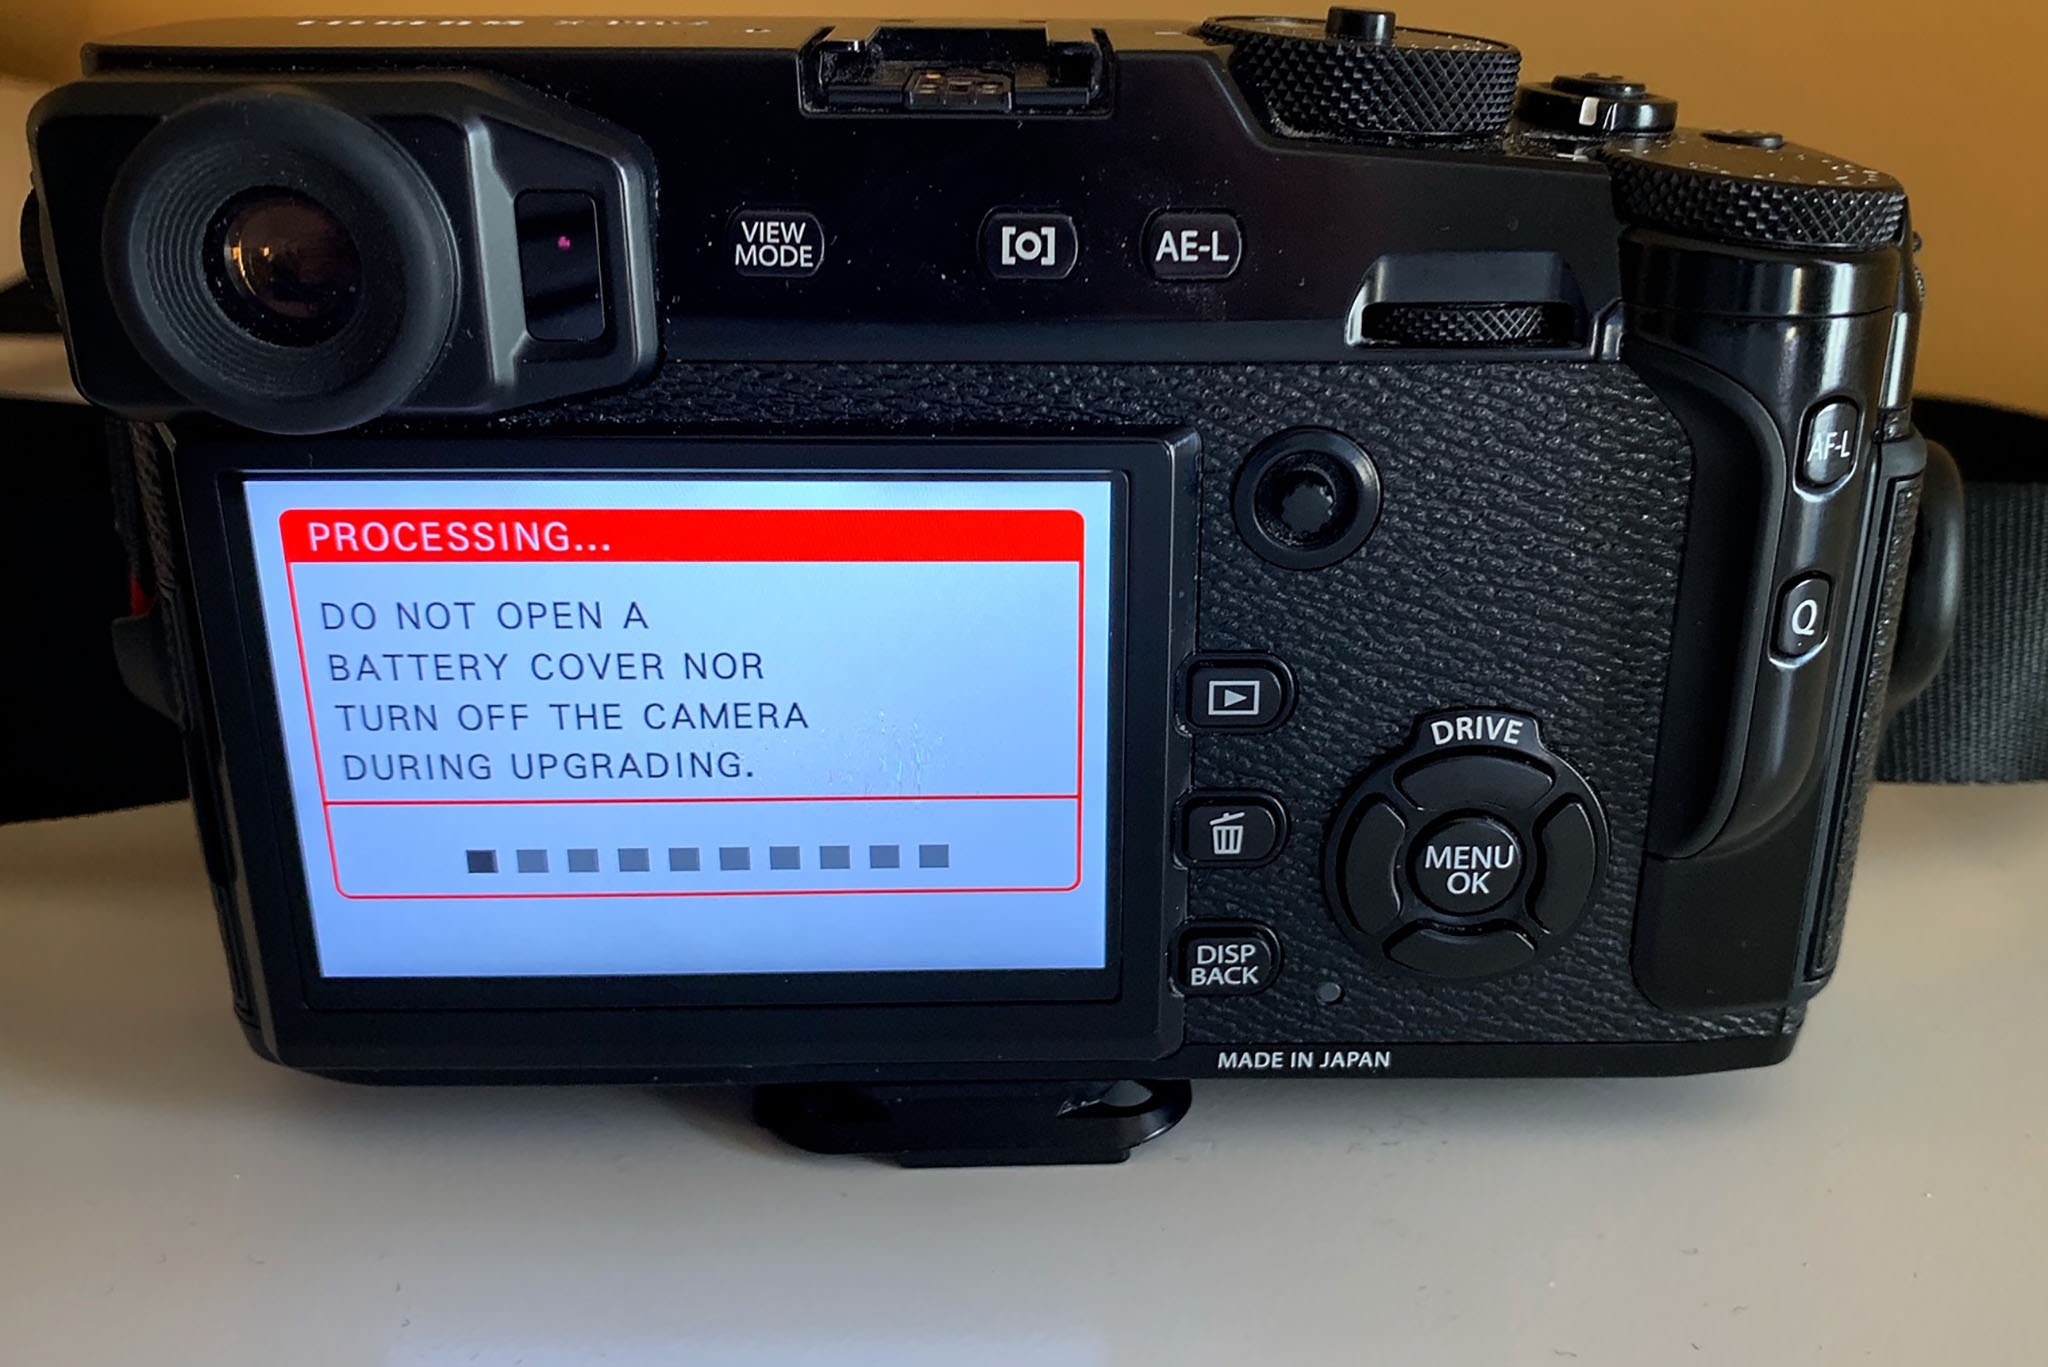 How to Update Firmware on Fujifilm Cameras